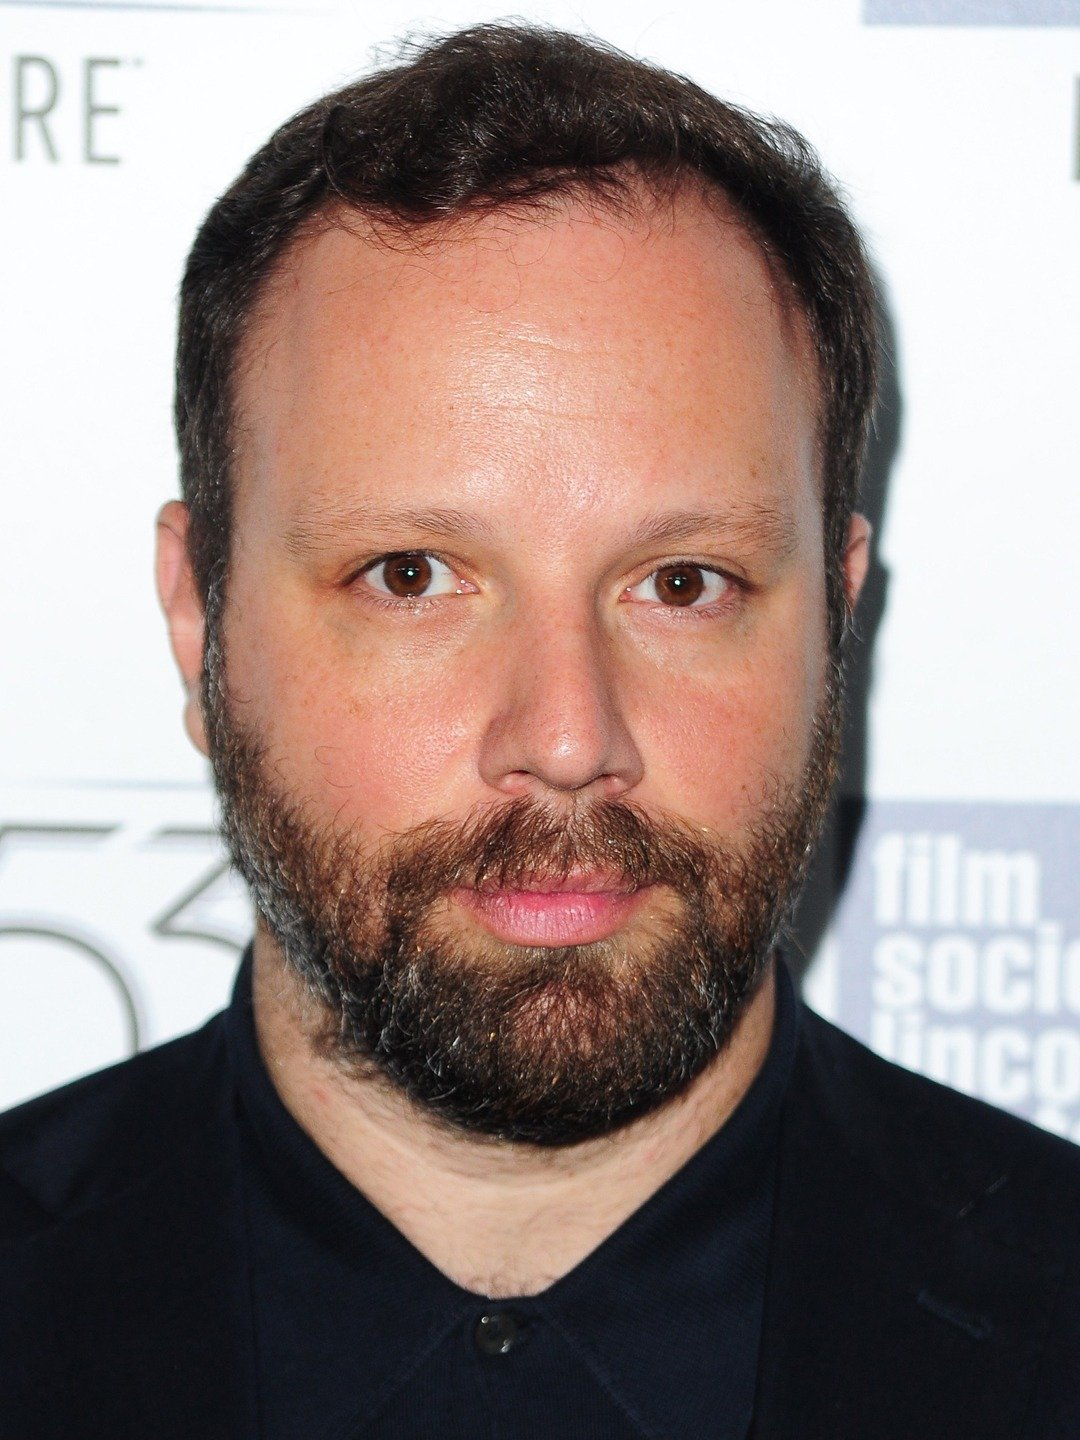 Yorgos Lanthimos at arrivals for THE MARTIAN Premiere at New York Film Festival 2015, Alice Tully Hall at Lincoln Center, New York, NY September 27, 2015. Photo By: Gregorio T. Binuya